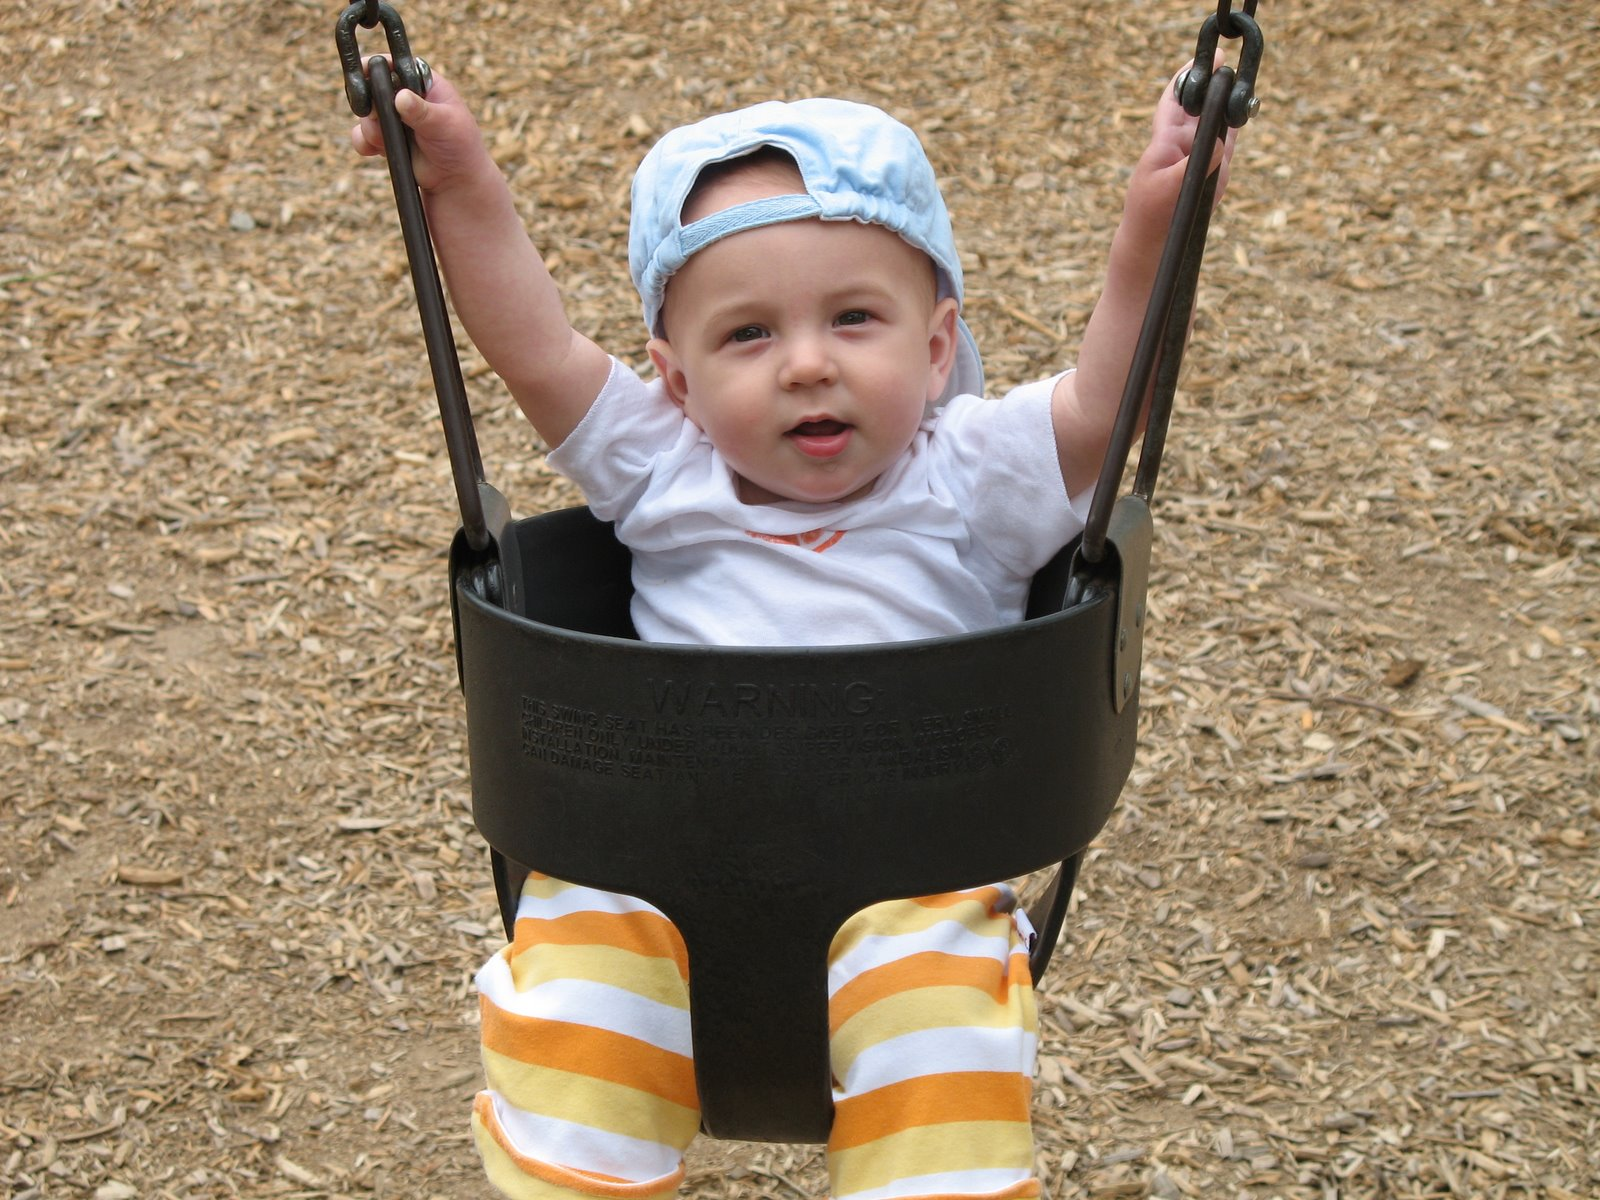 Man swinging baby by arms